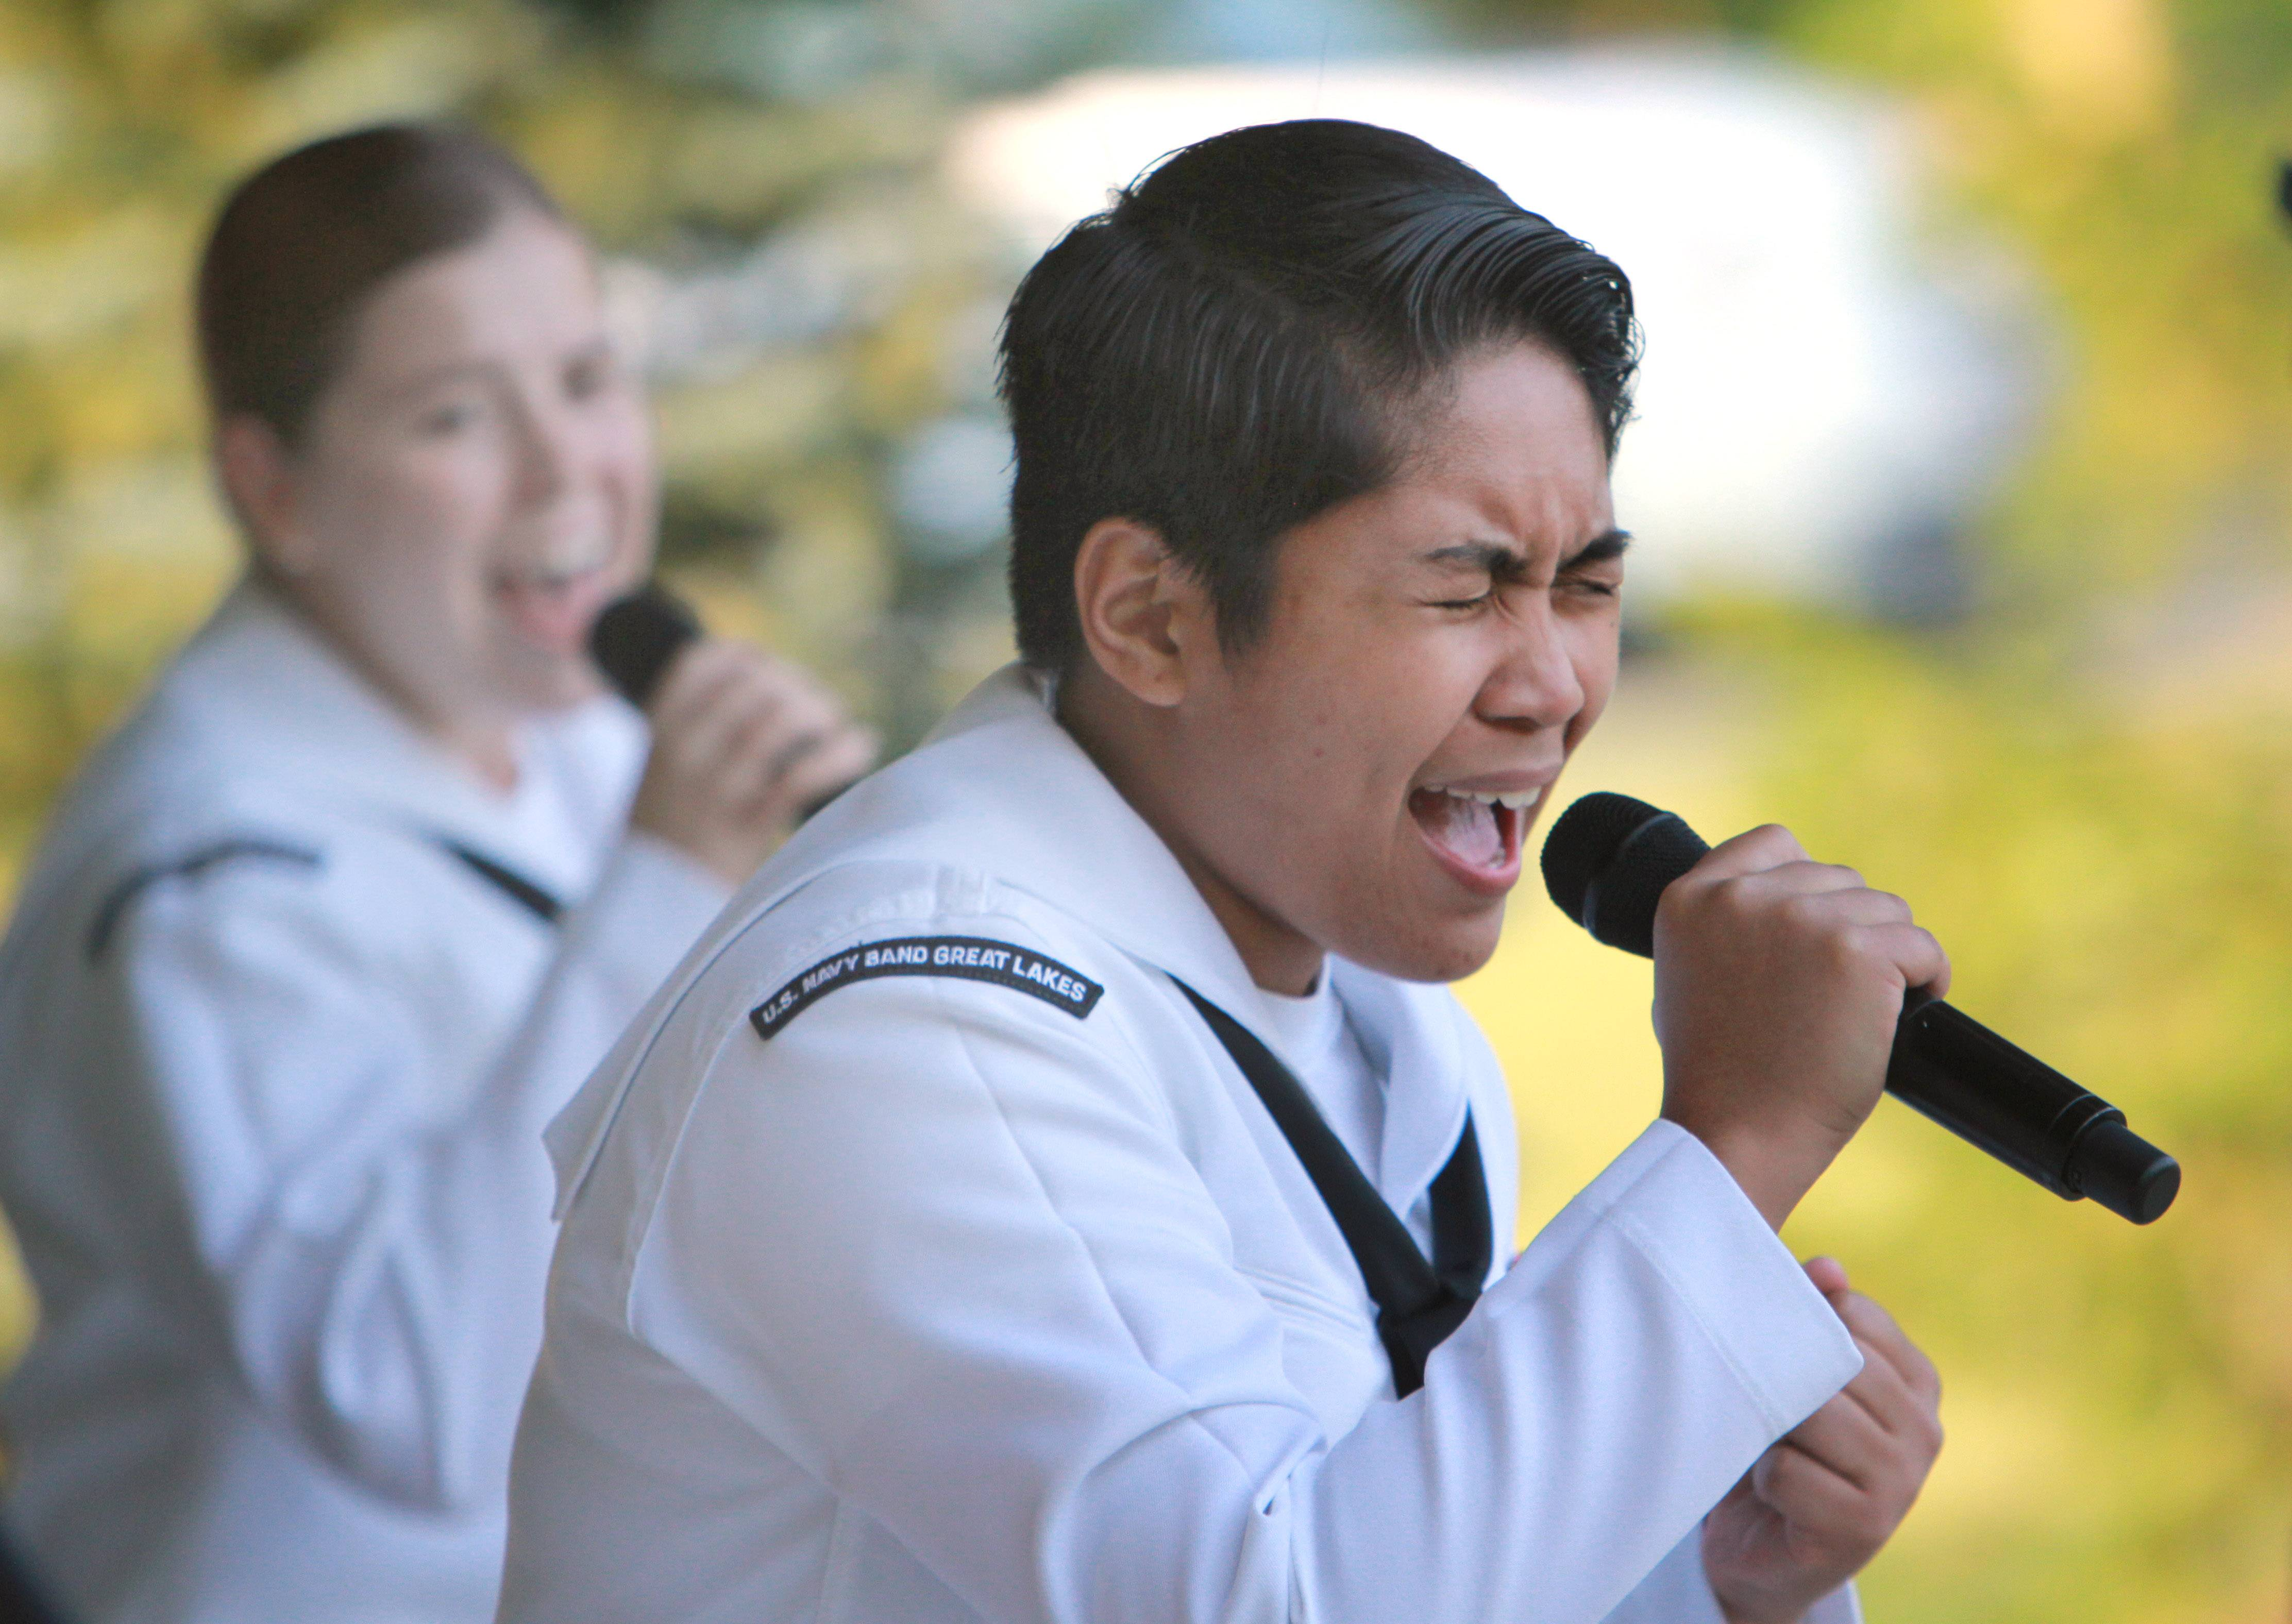 Danlie Cuenca, right, and Danielle Clark entertain the crowd Wednesday night as The Great Lakes naval band Horizon rocked out at Engle Memorial Park in Lindenhurst.